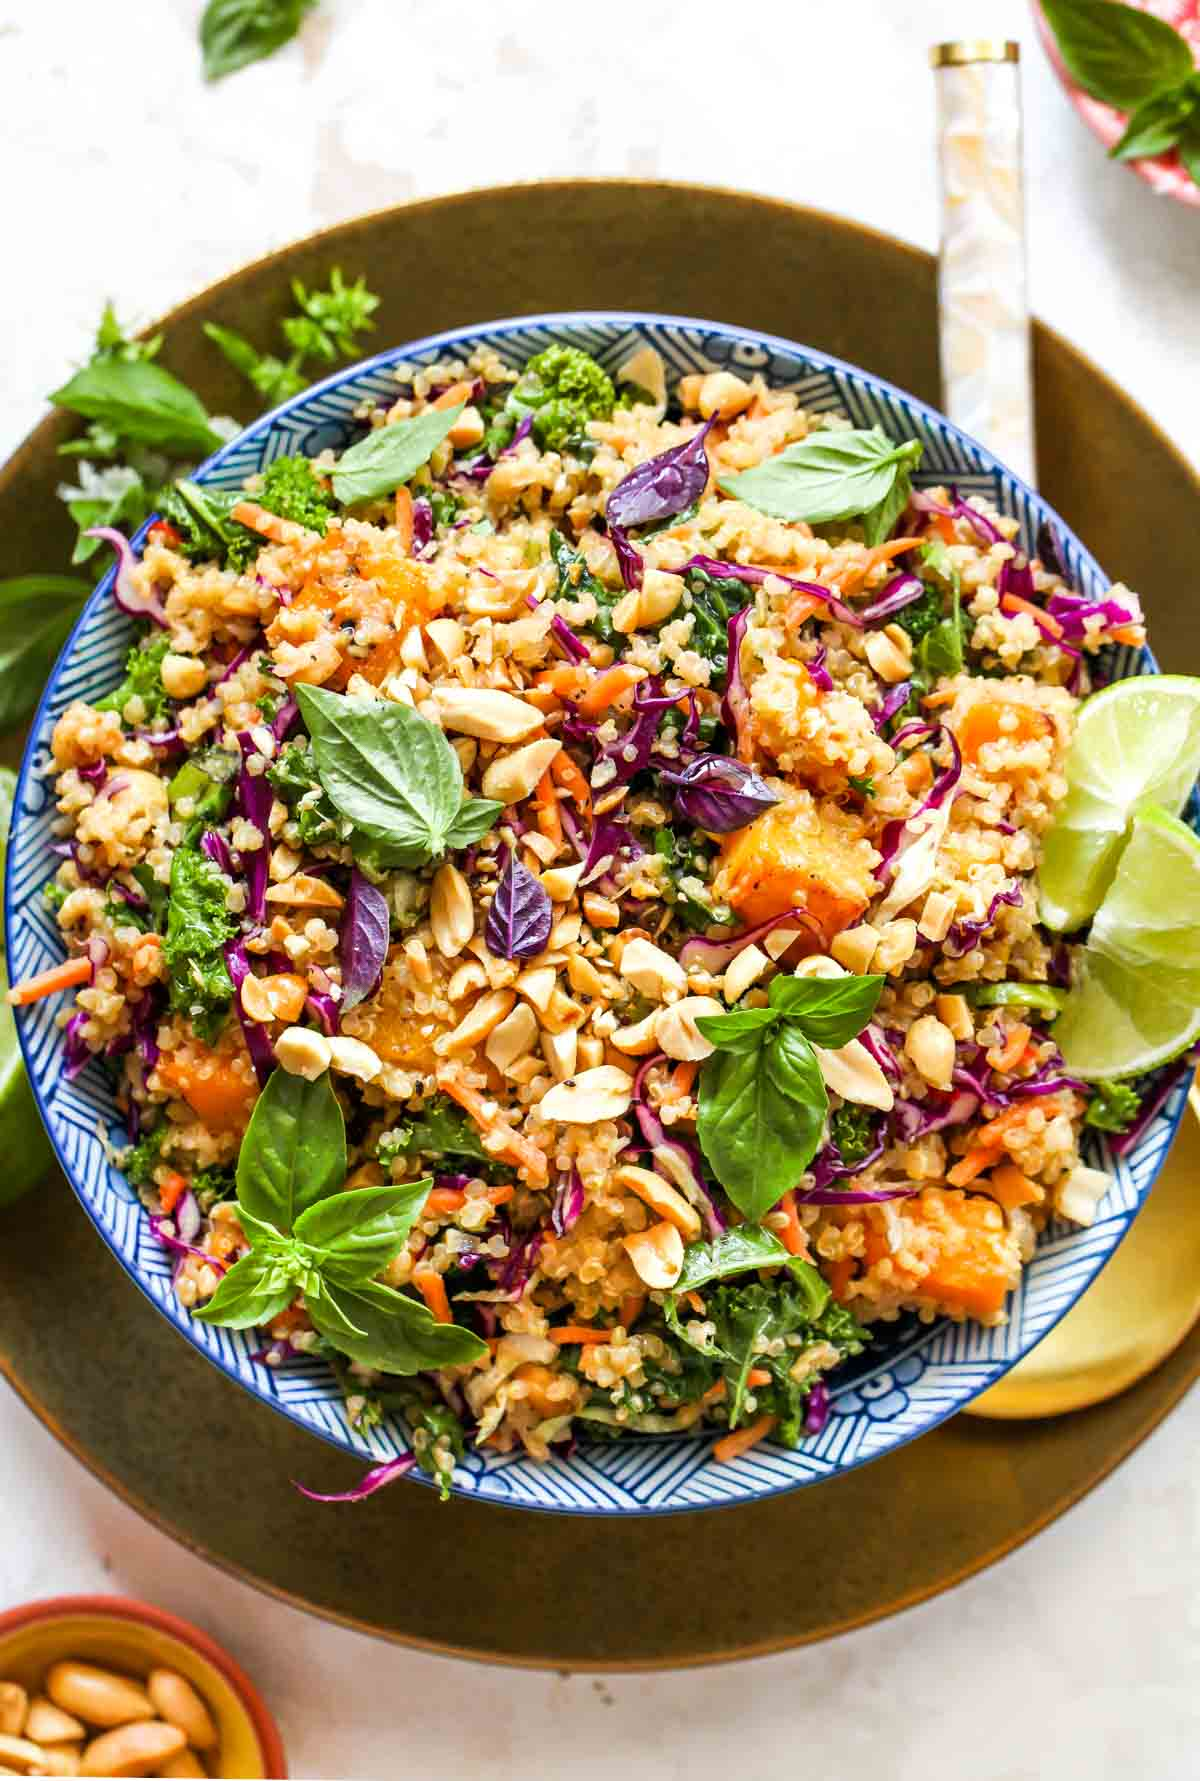 Quinoa and butternut squash salad in a blue bowl on a gold plate